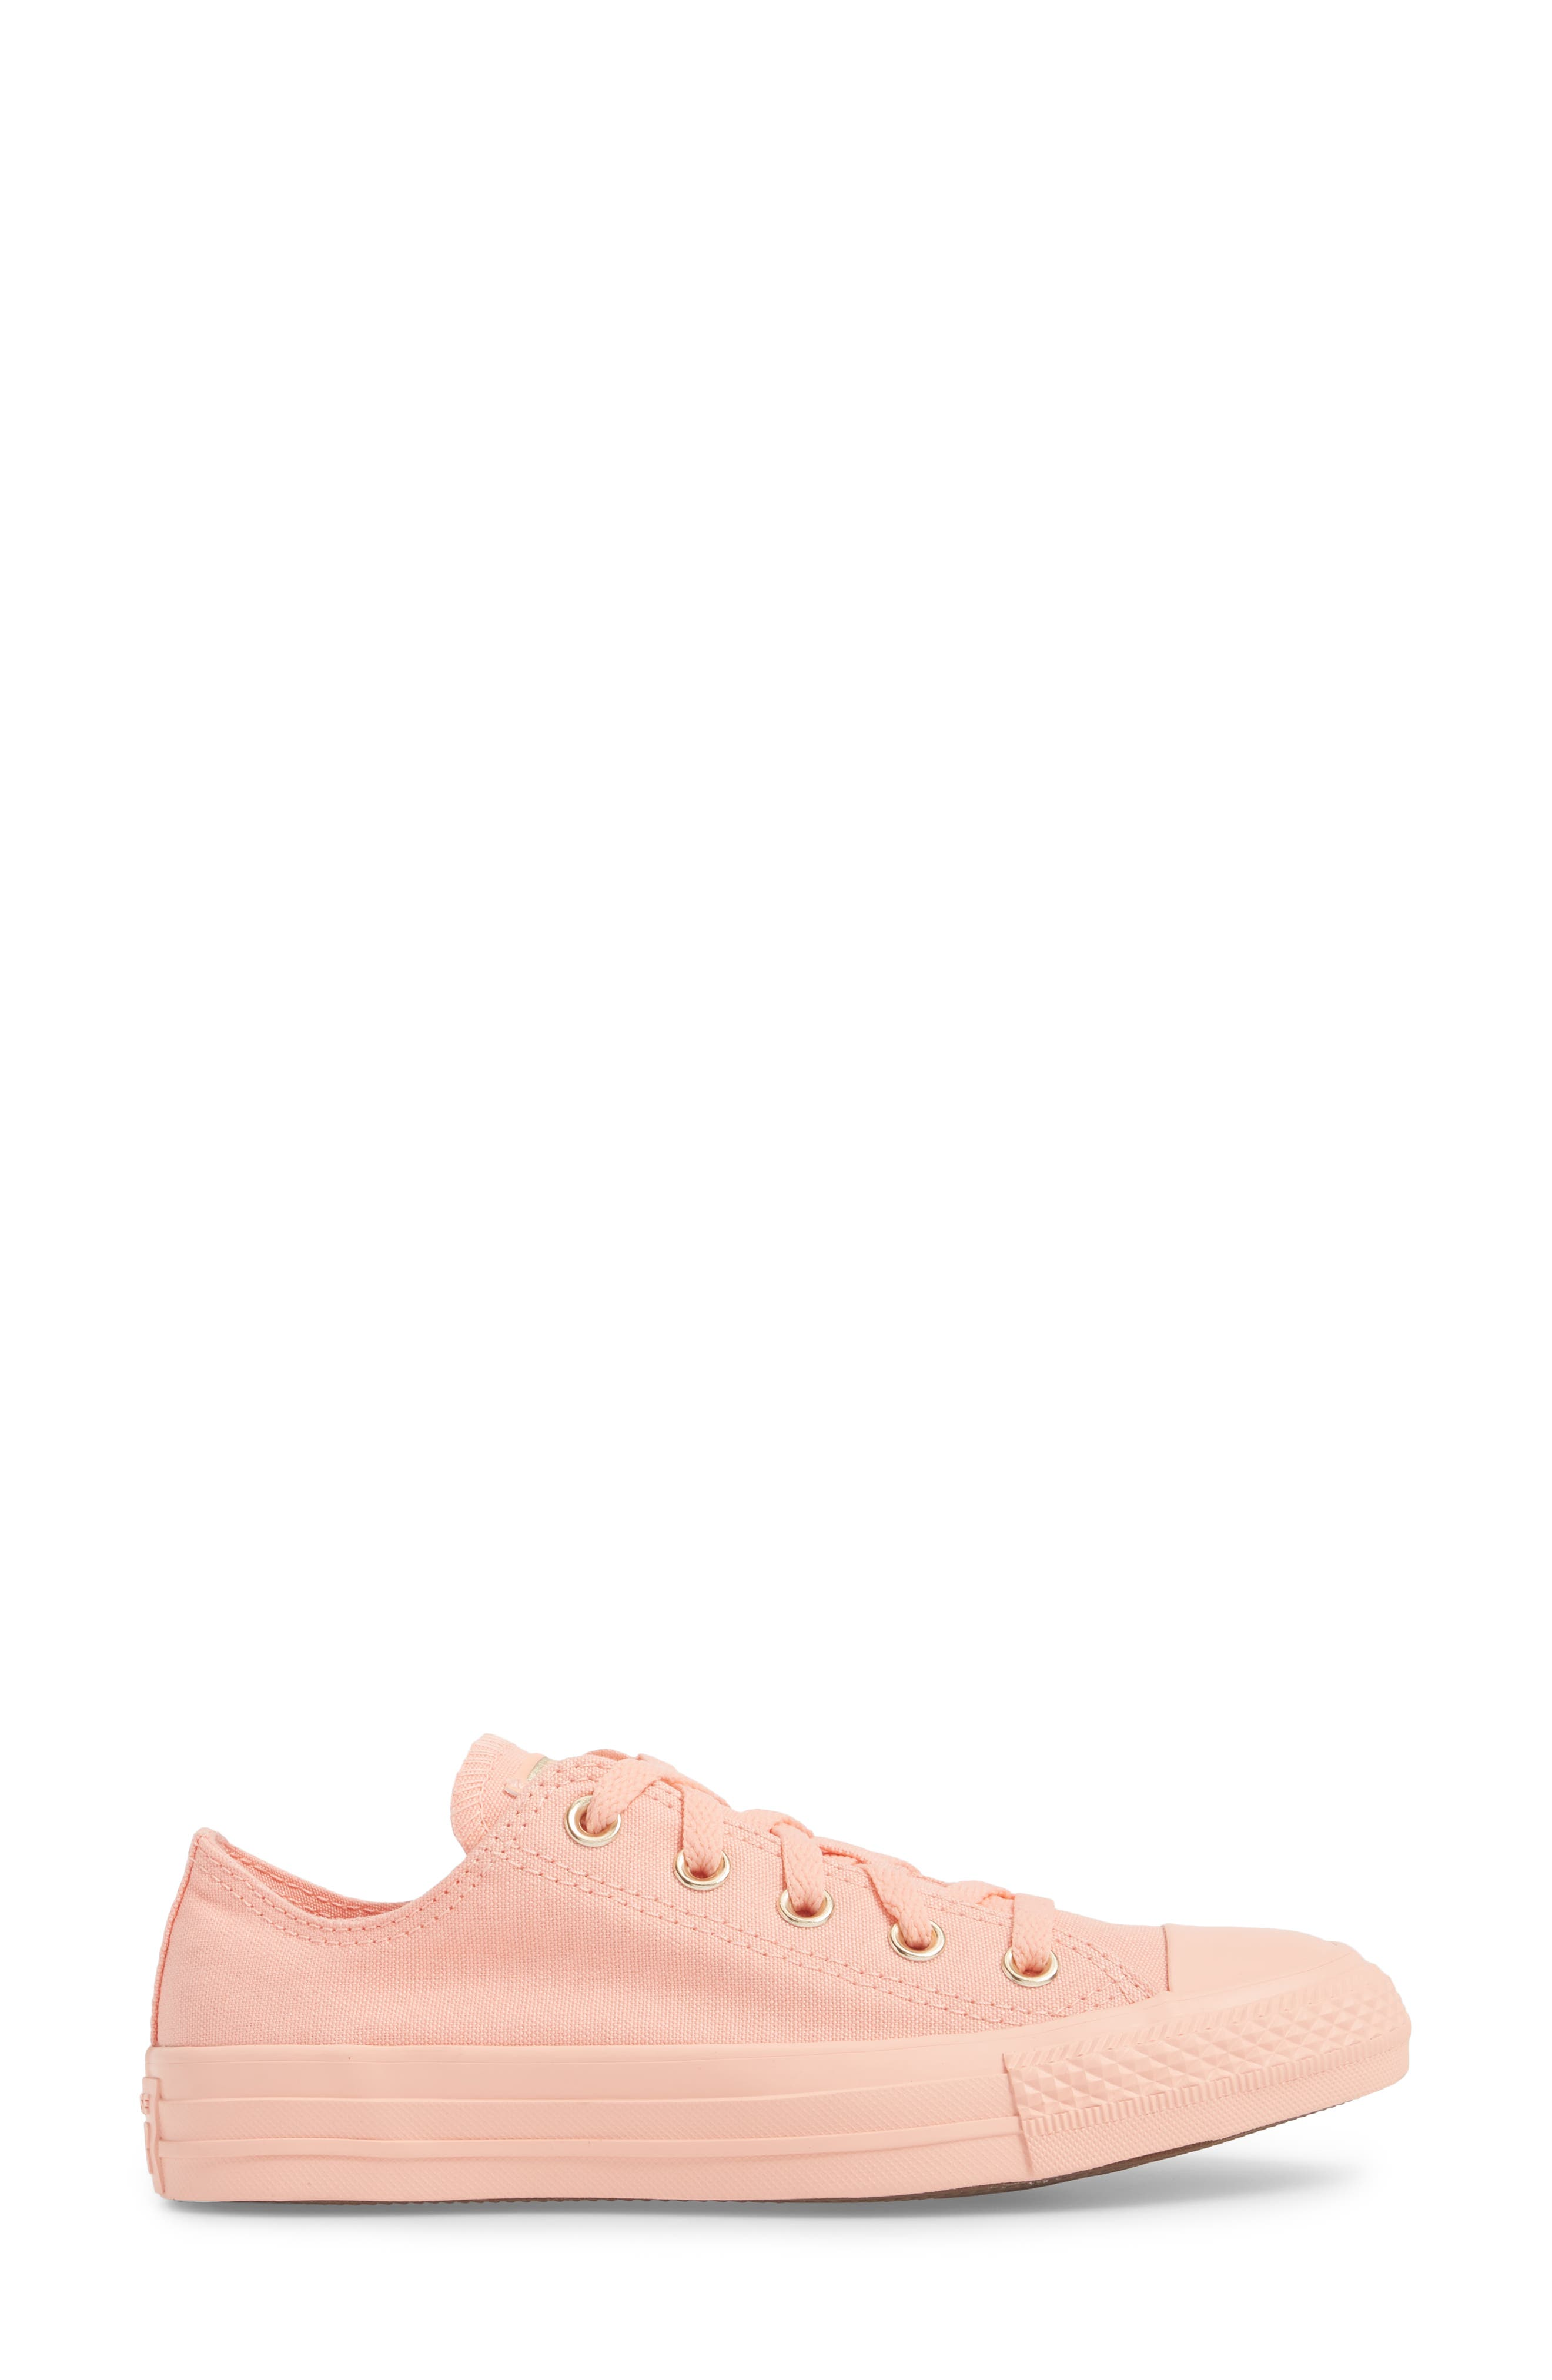 Chuck Taylor<sup>®</sup> All Star<sup>®</sup> Seasonal Color Sneaker,                             Alternate thumbnail 3, color,                             Pale Coral